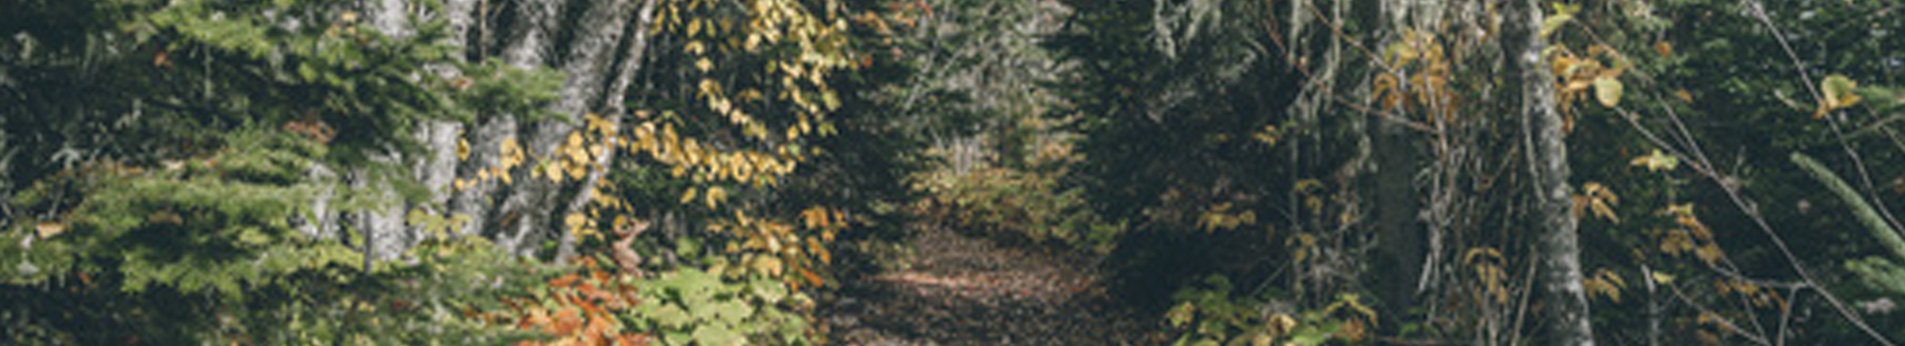 Michigan Tree Harvesting Services | Forest Management